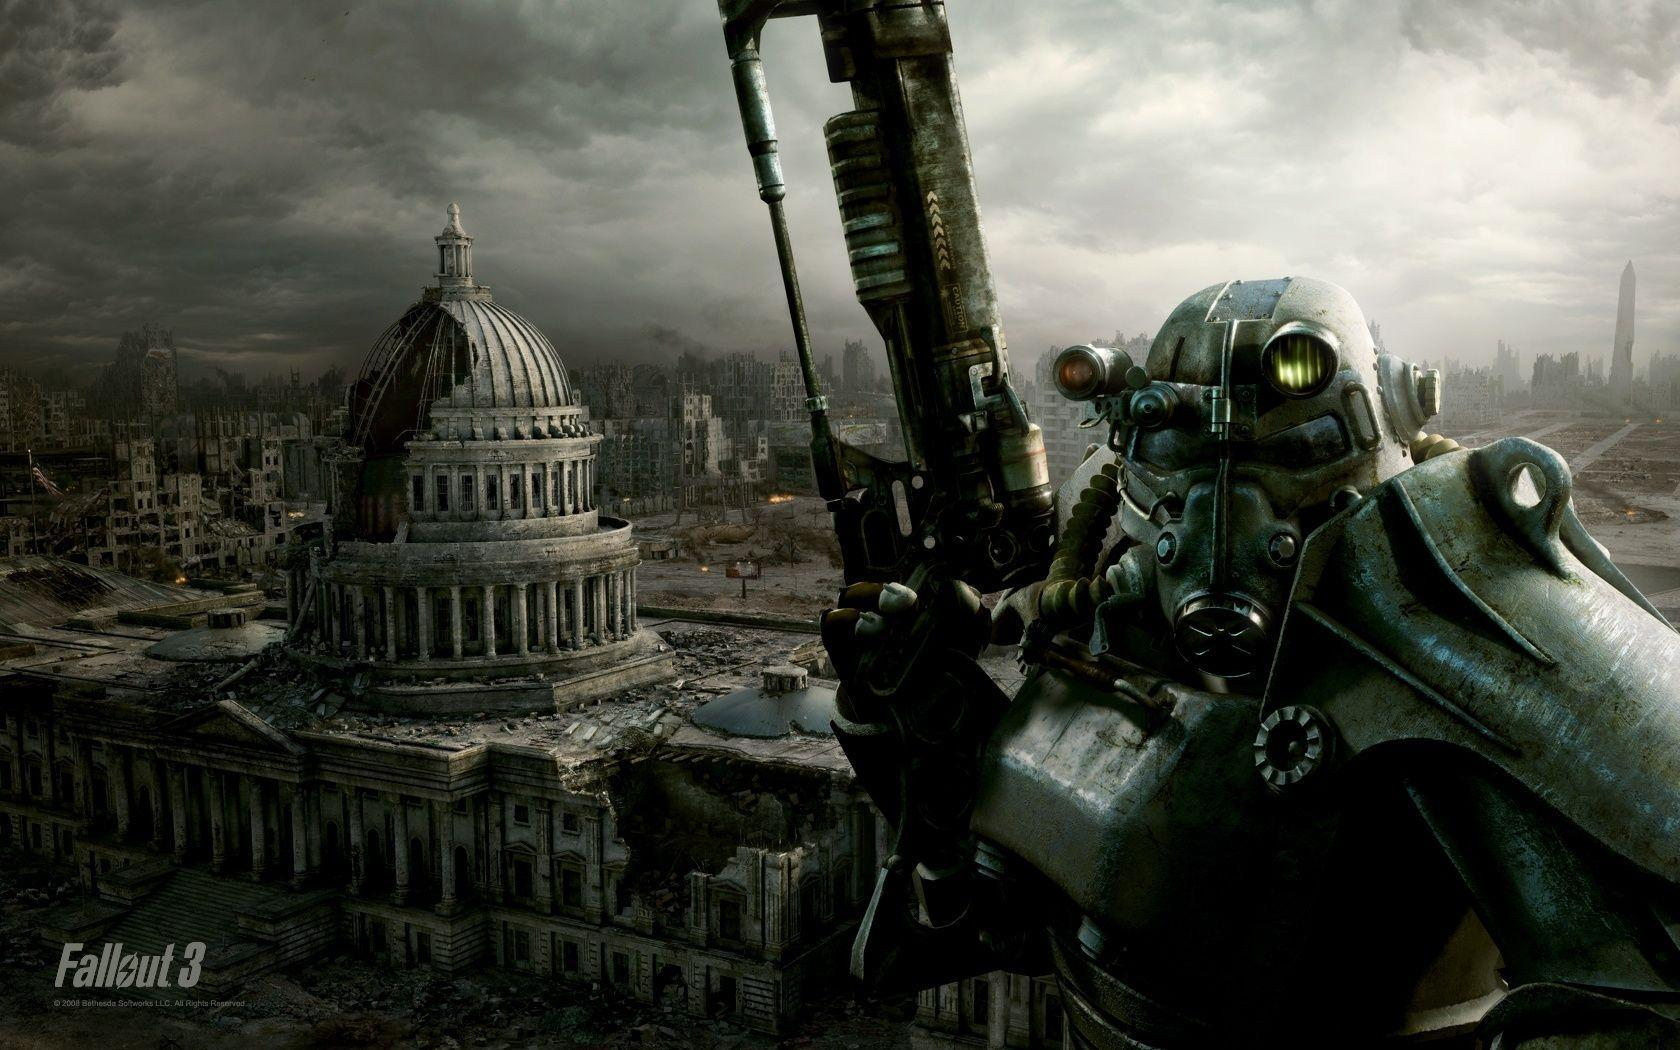 177 Fallout HD Wallpapers | Backgrounds - Wallpaper Abyss